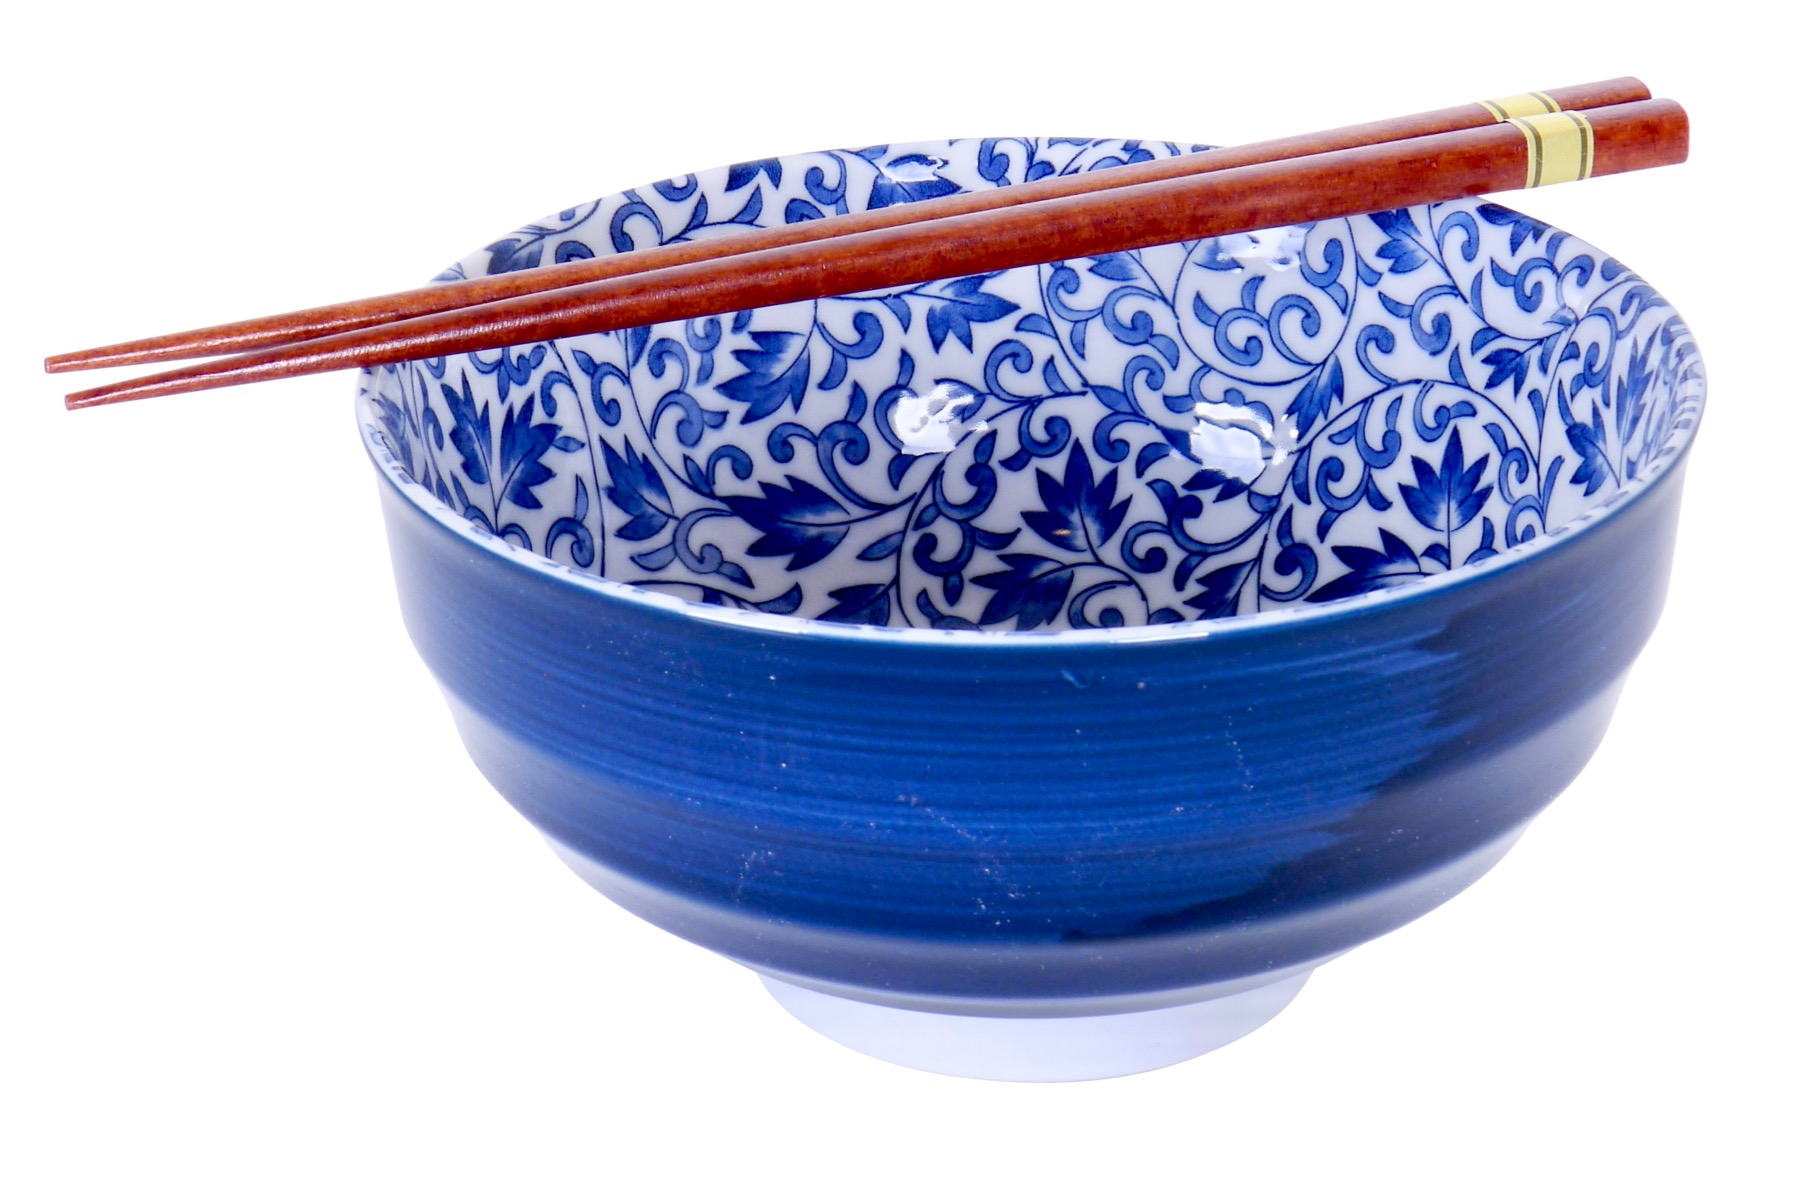 Image of Porcelain Bowls Blue with Ivy, 6.75 x 3.25-Inch